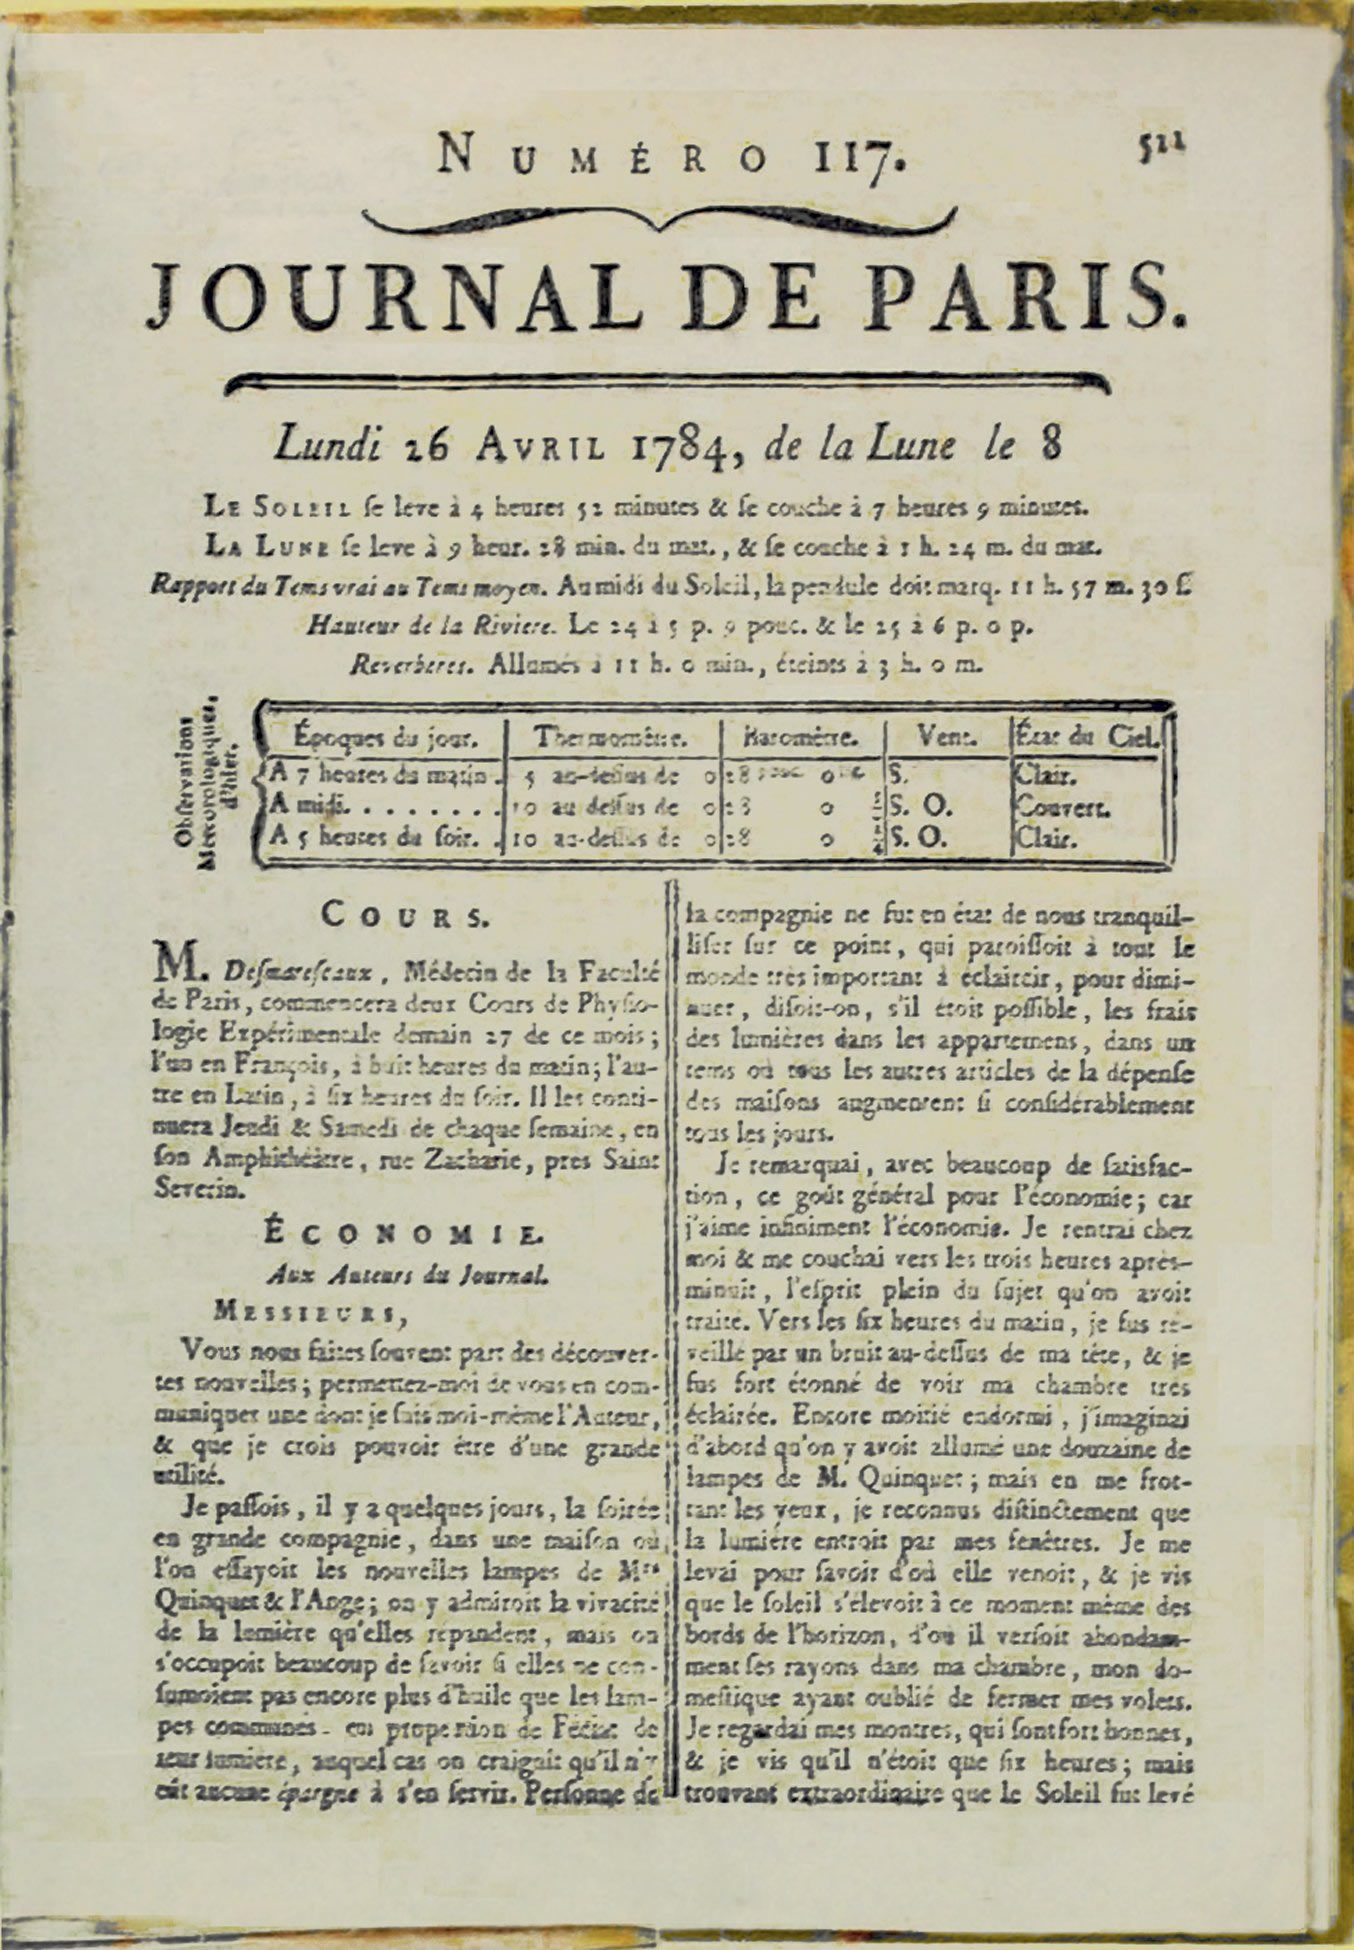 Journal de Paris, 16 April 1784